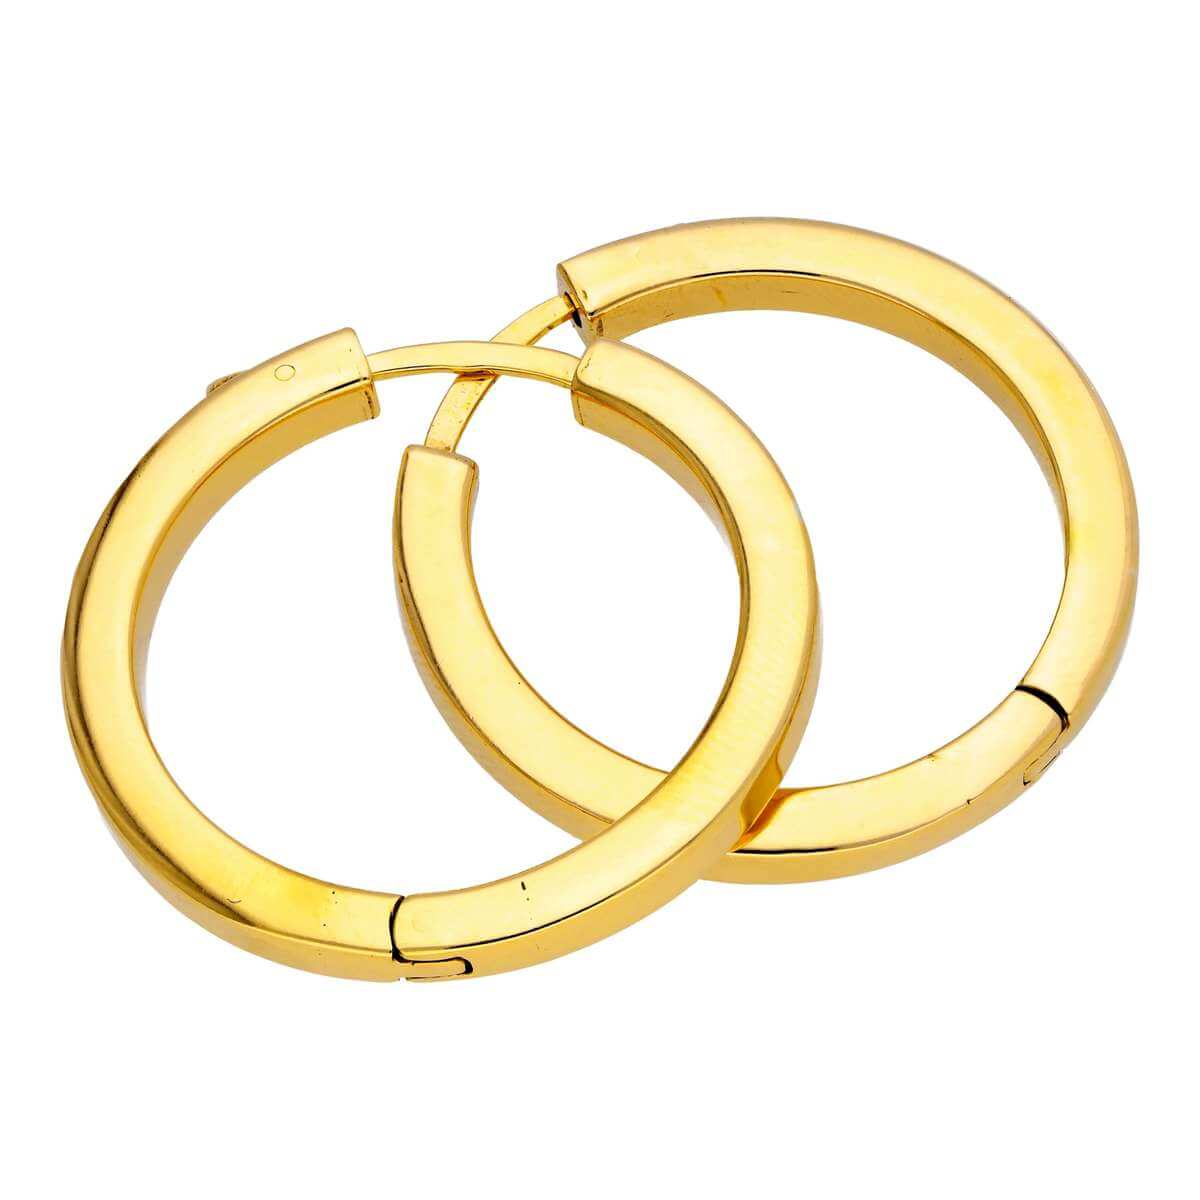 Gold Plated Sterling Silver Square Tube Push Button 30mm Hoop Earrings